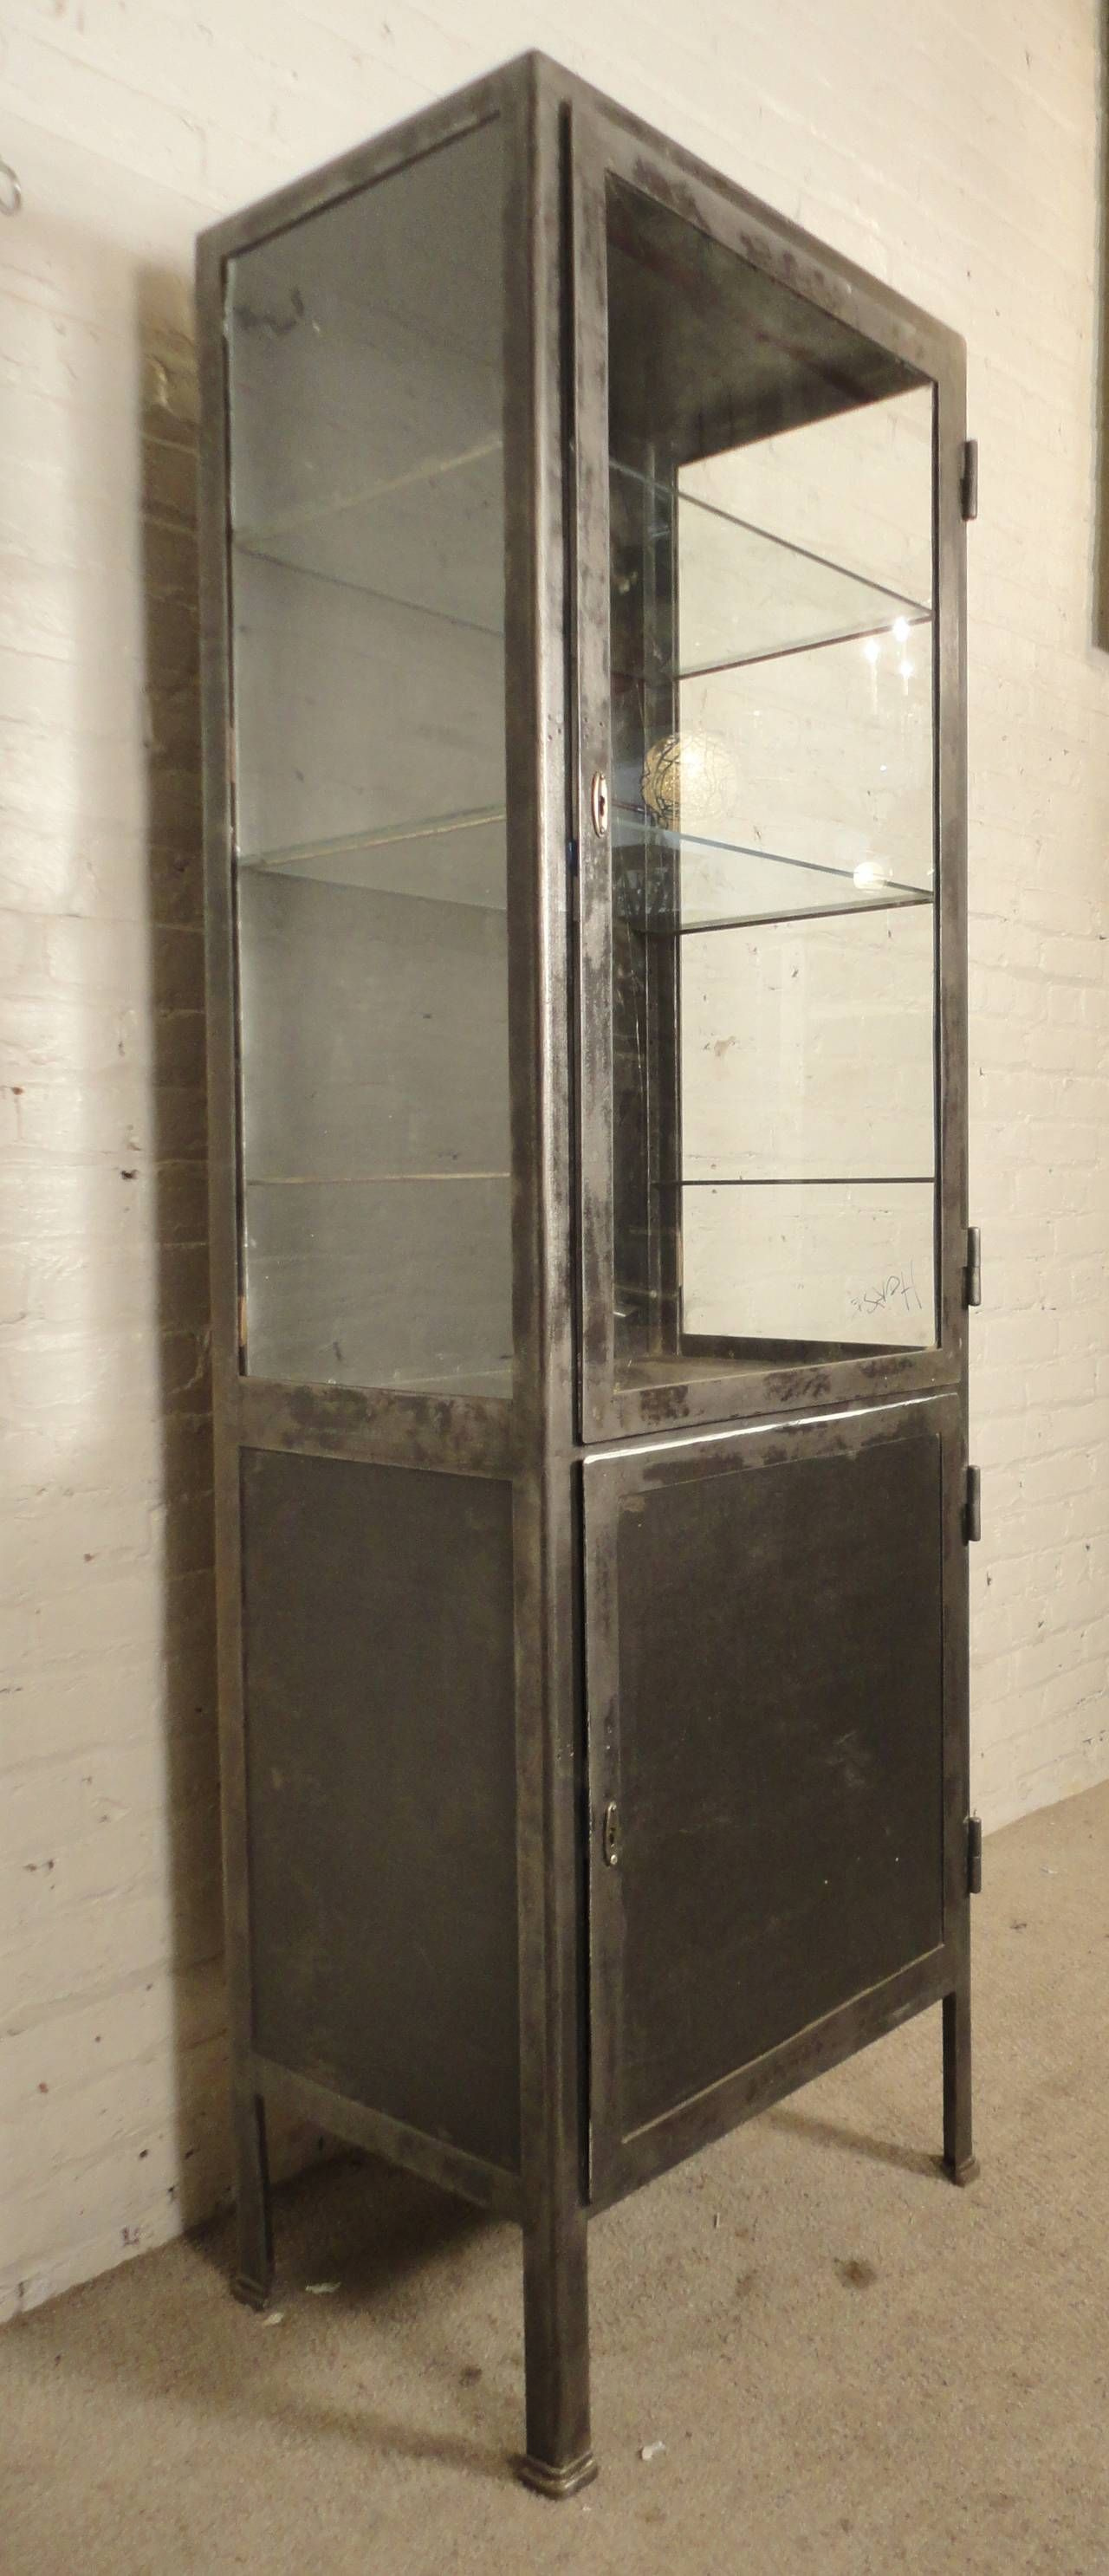 Foyer Display Cabinet : Tall industrial metal display cabinet in entryway